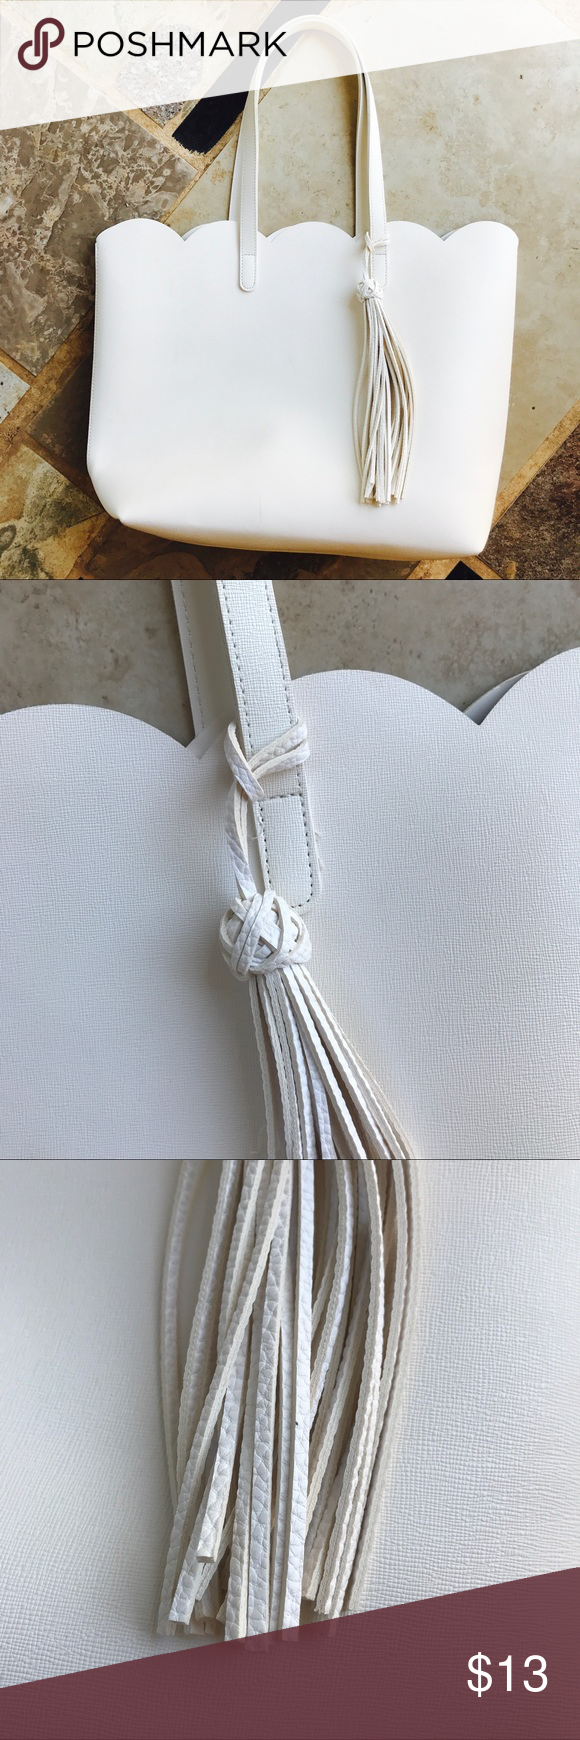 EXTRA LARGE WHITE TASSLE LEATHER TOTE Vegan leather. Adorable !!! Used only twice. White isn't my color ... amazing bag tho!!! Xo Bags